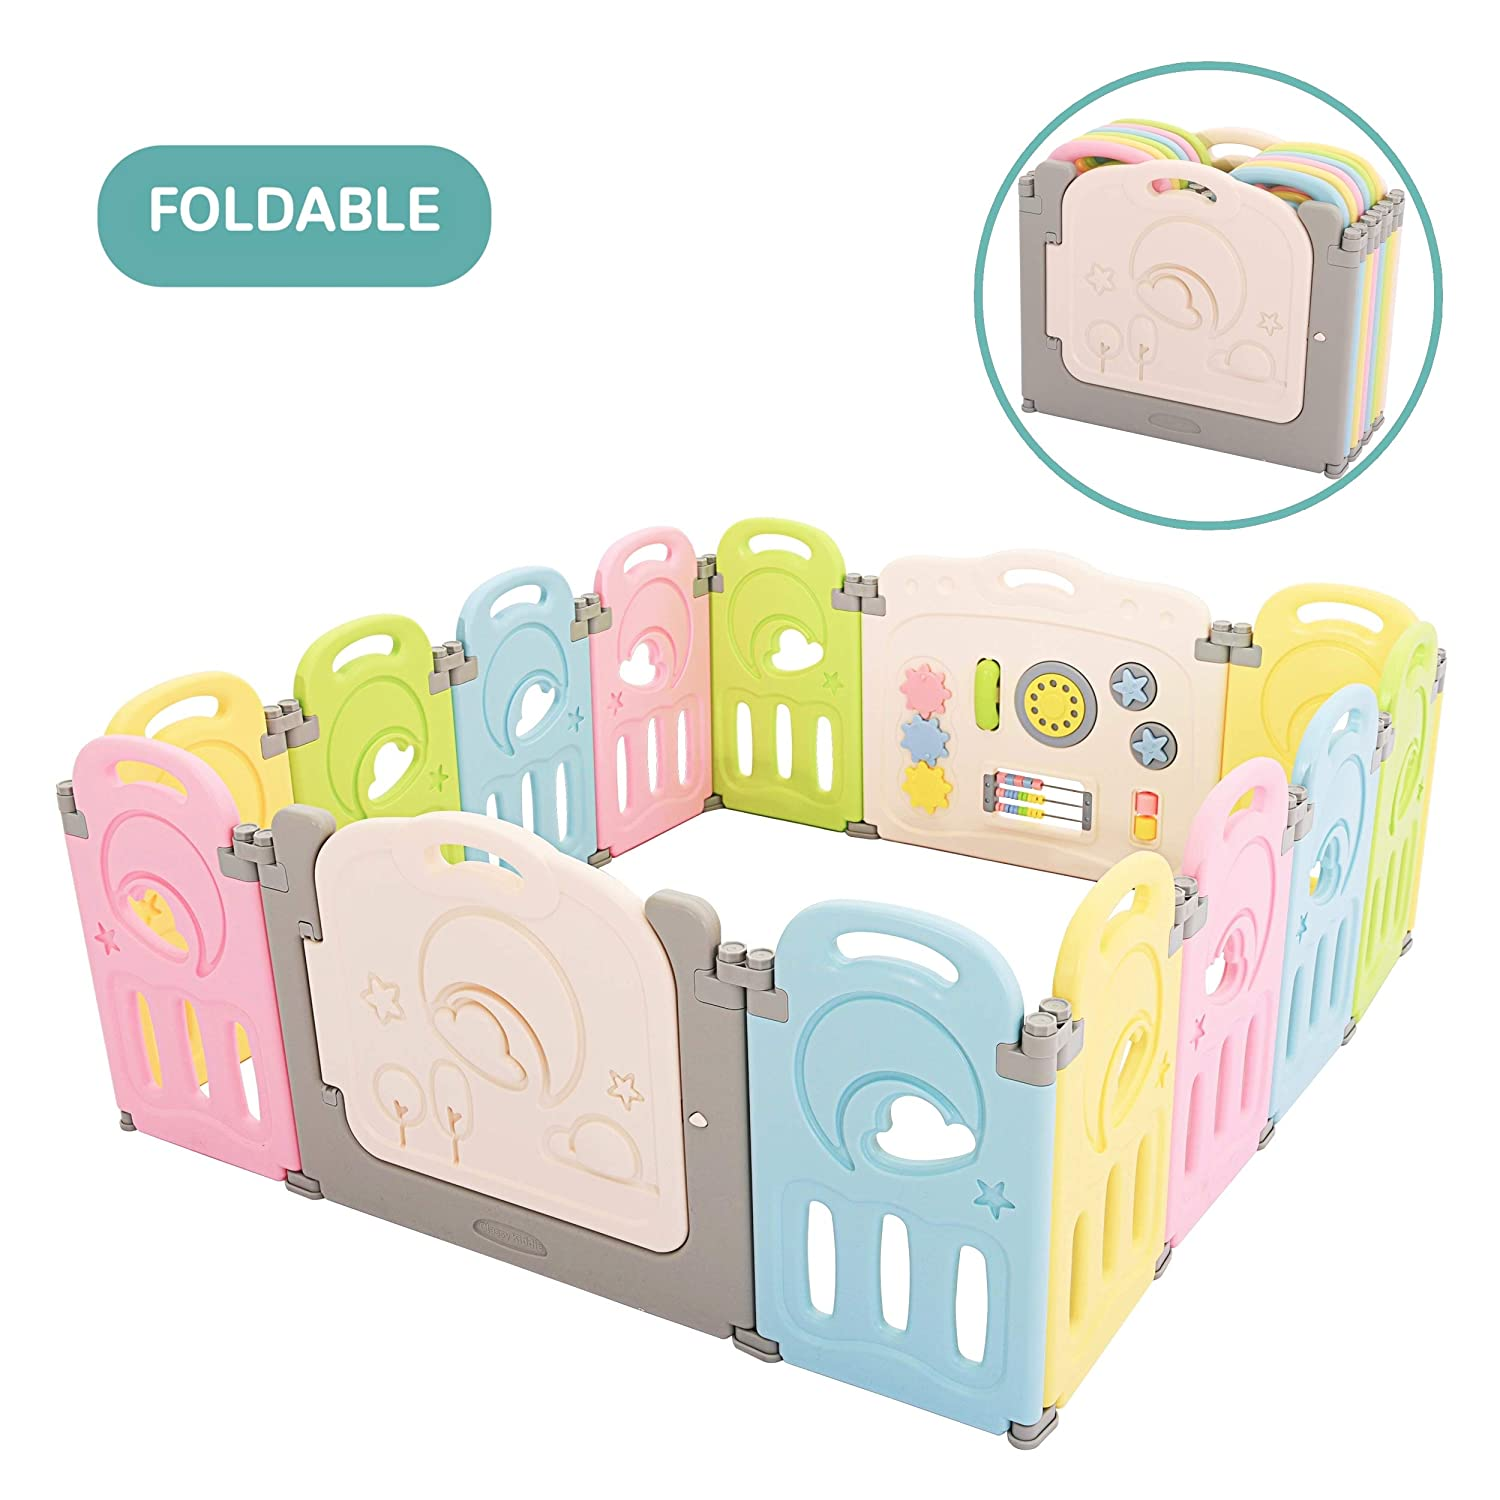 Fortella Cloud Castle Foldable Playpen, Baby Safety Play Yard with Whiteboard and Activity Wall, Indoors or Outdoors Multicolor 14 Panel